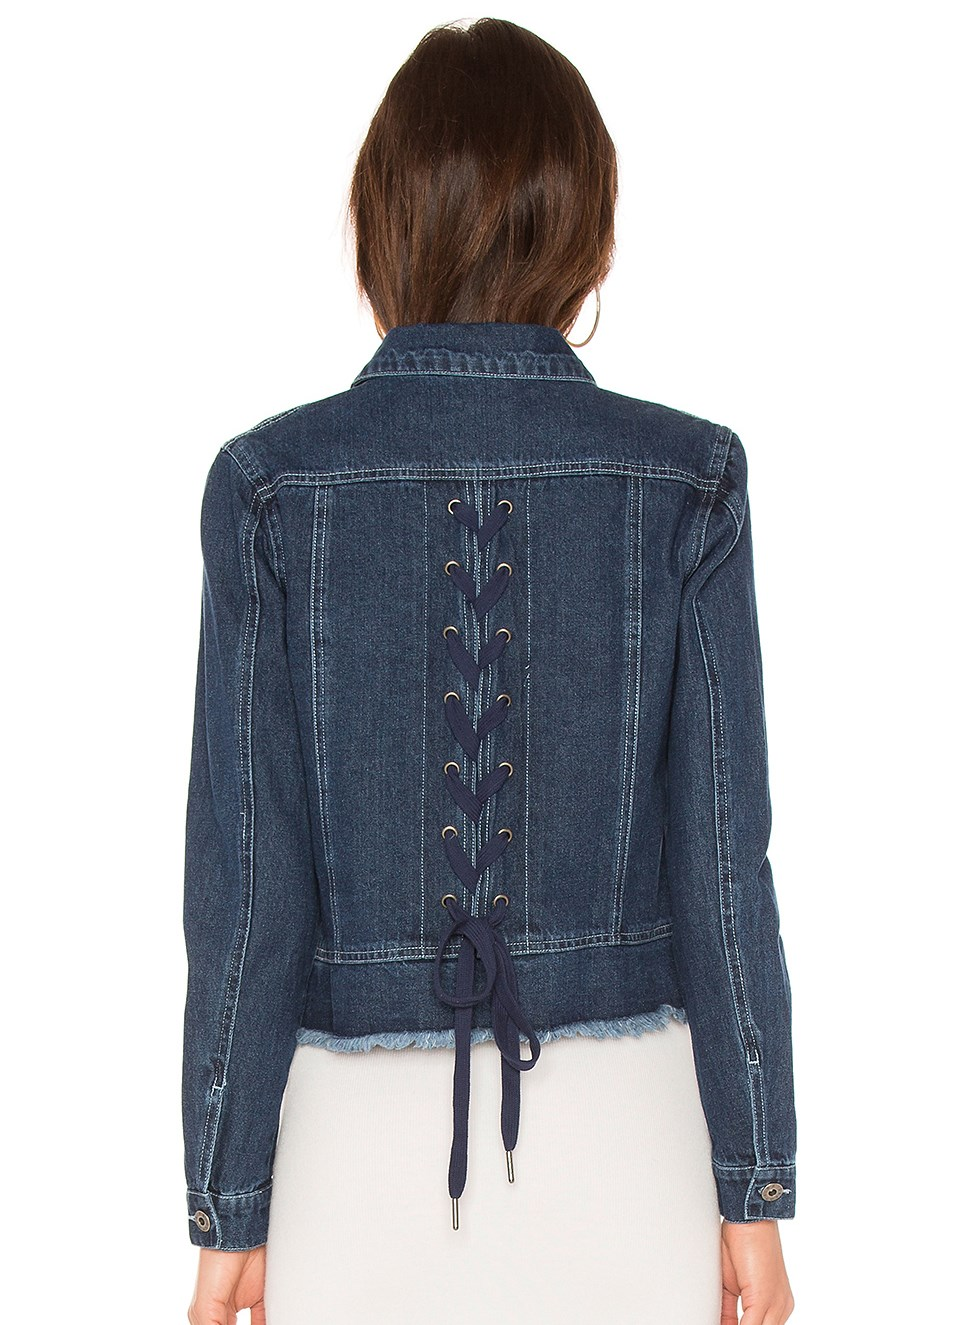 Statement Denim Jackets - Not Your Mother's Denim Jacket! This year's denim trends include distressing, undone hems, lace up details, & embroidery. You are used to seeing them on your jeans, but now the trend has moved on to denim jackets, too!